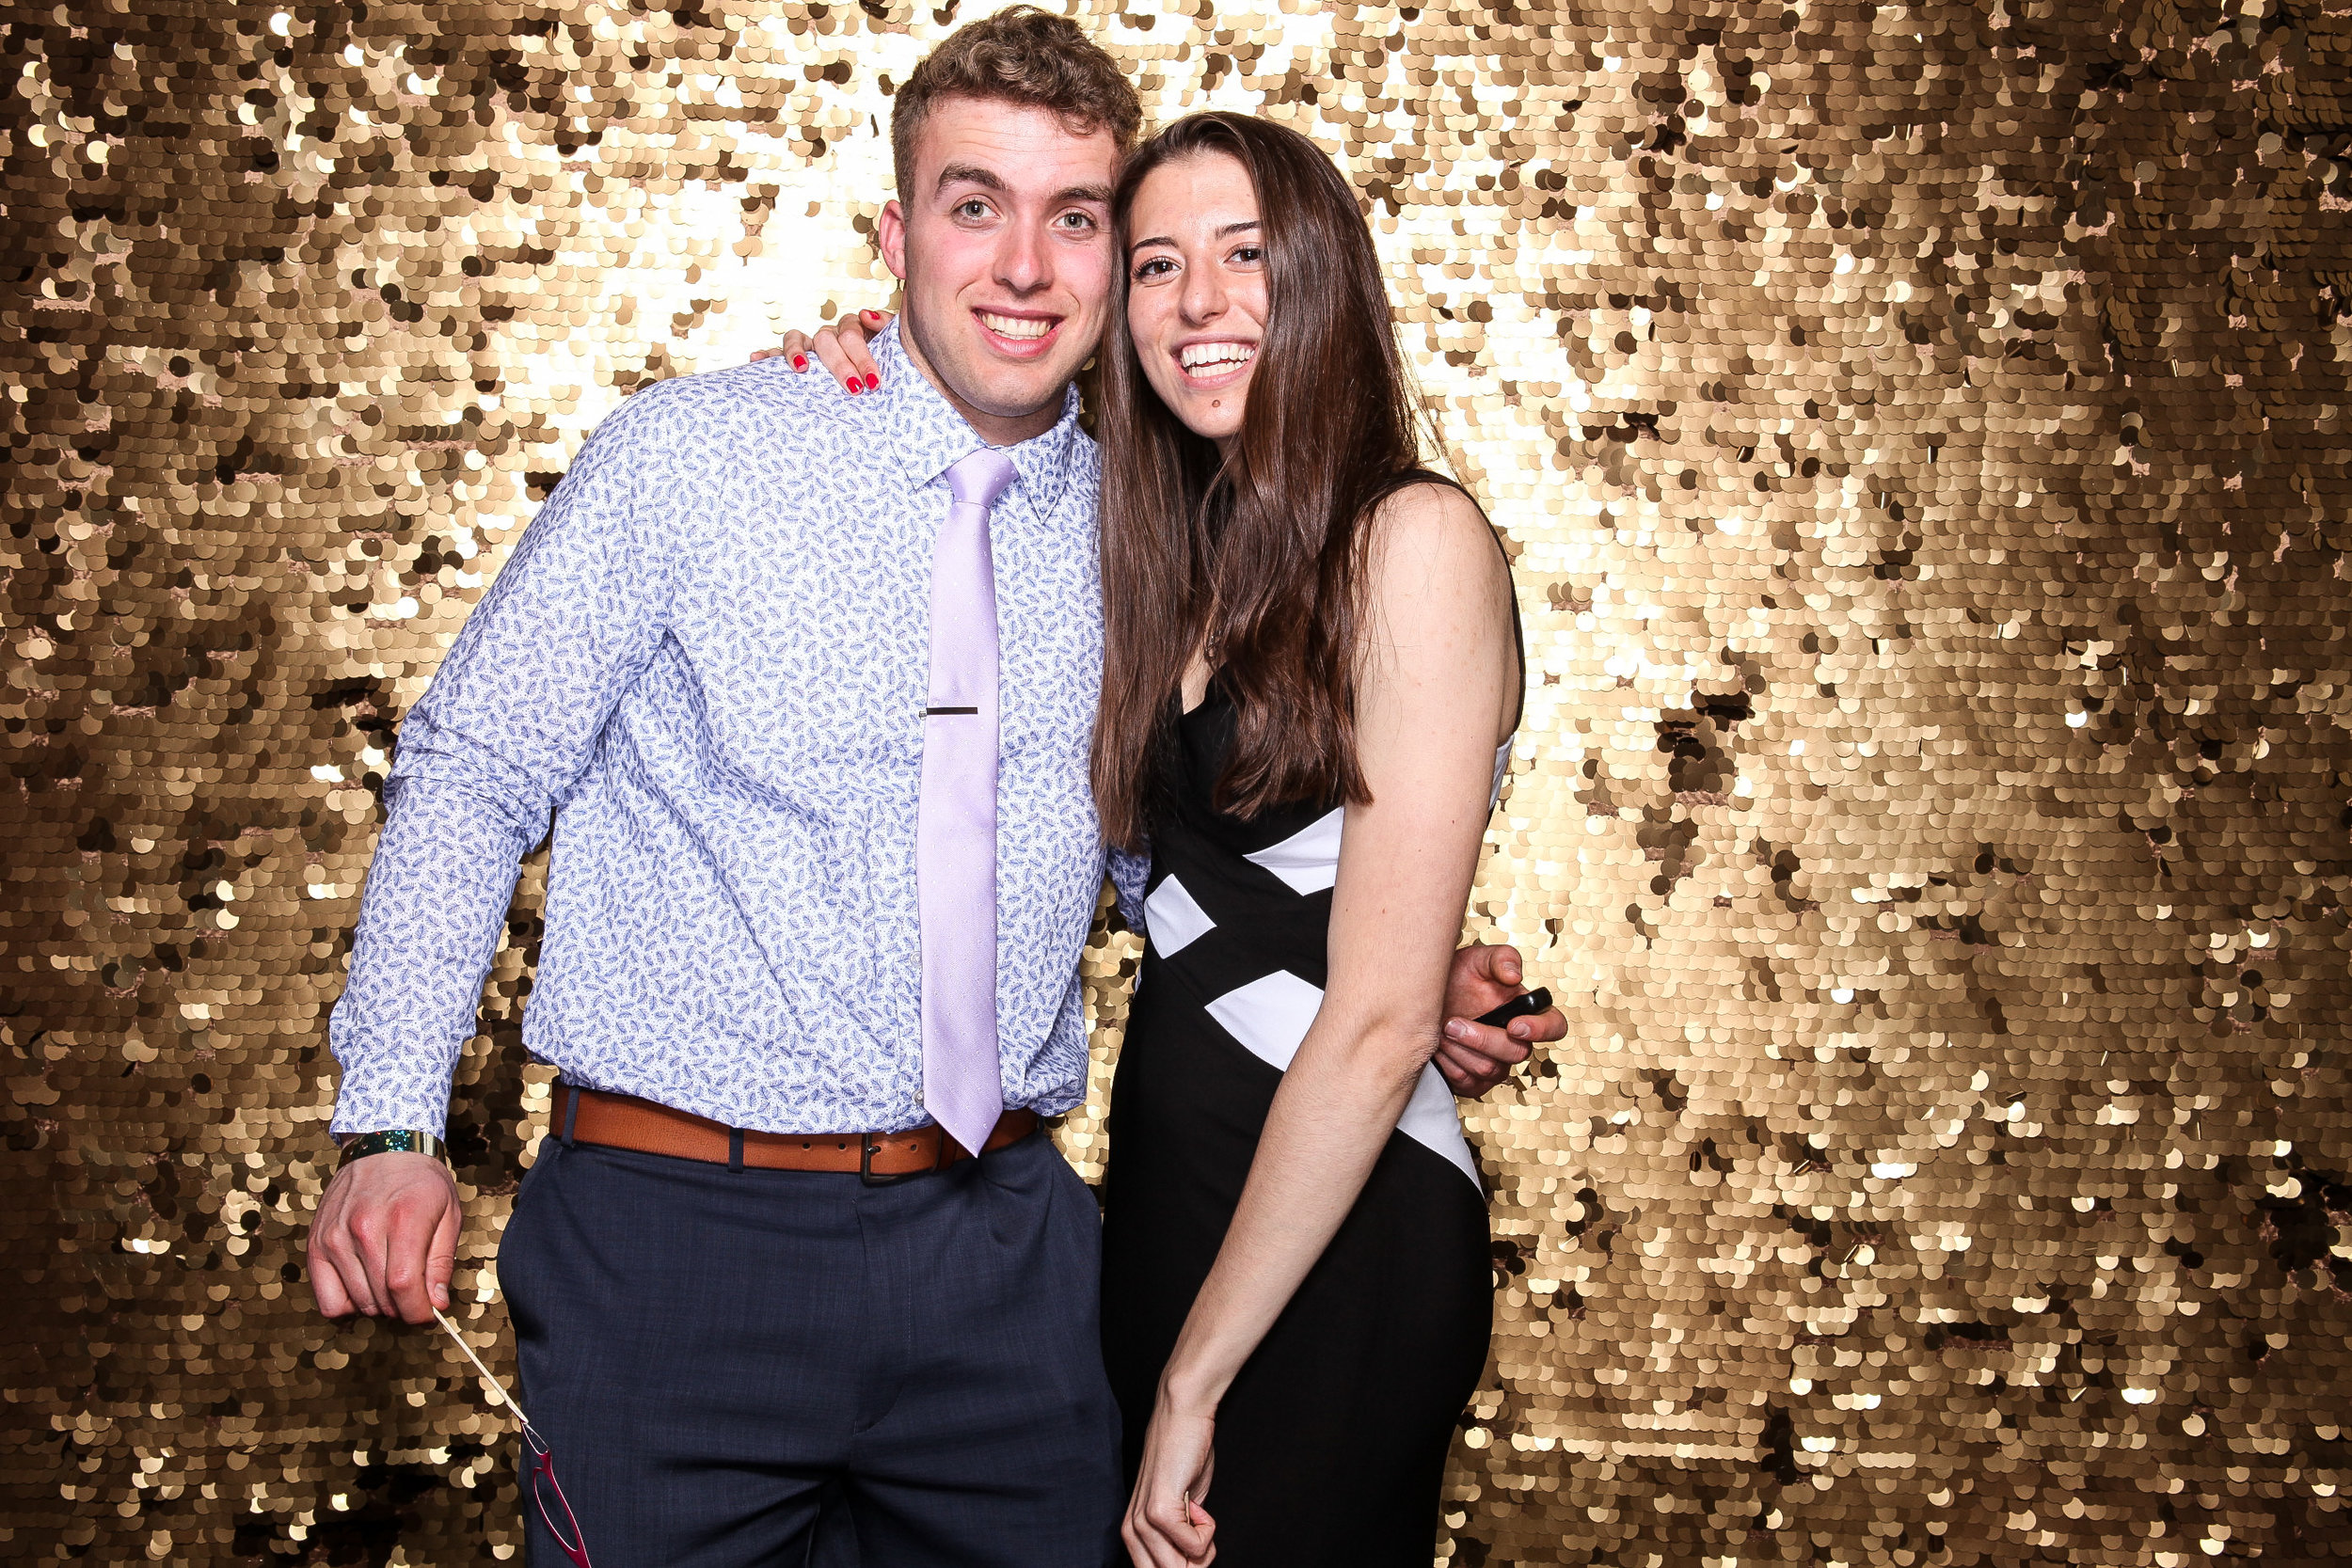 20190503_Adelphi_Senior_Formal-245.jpg